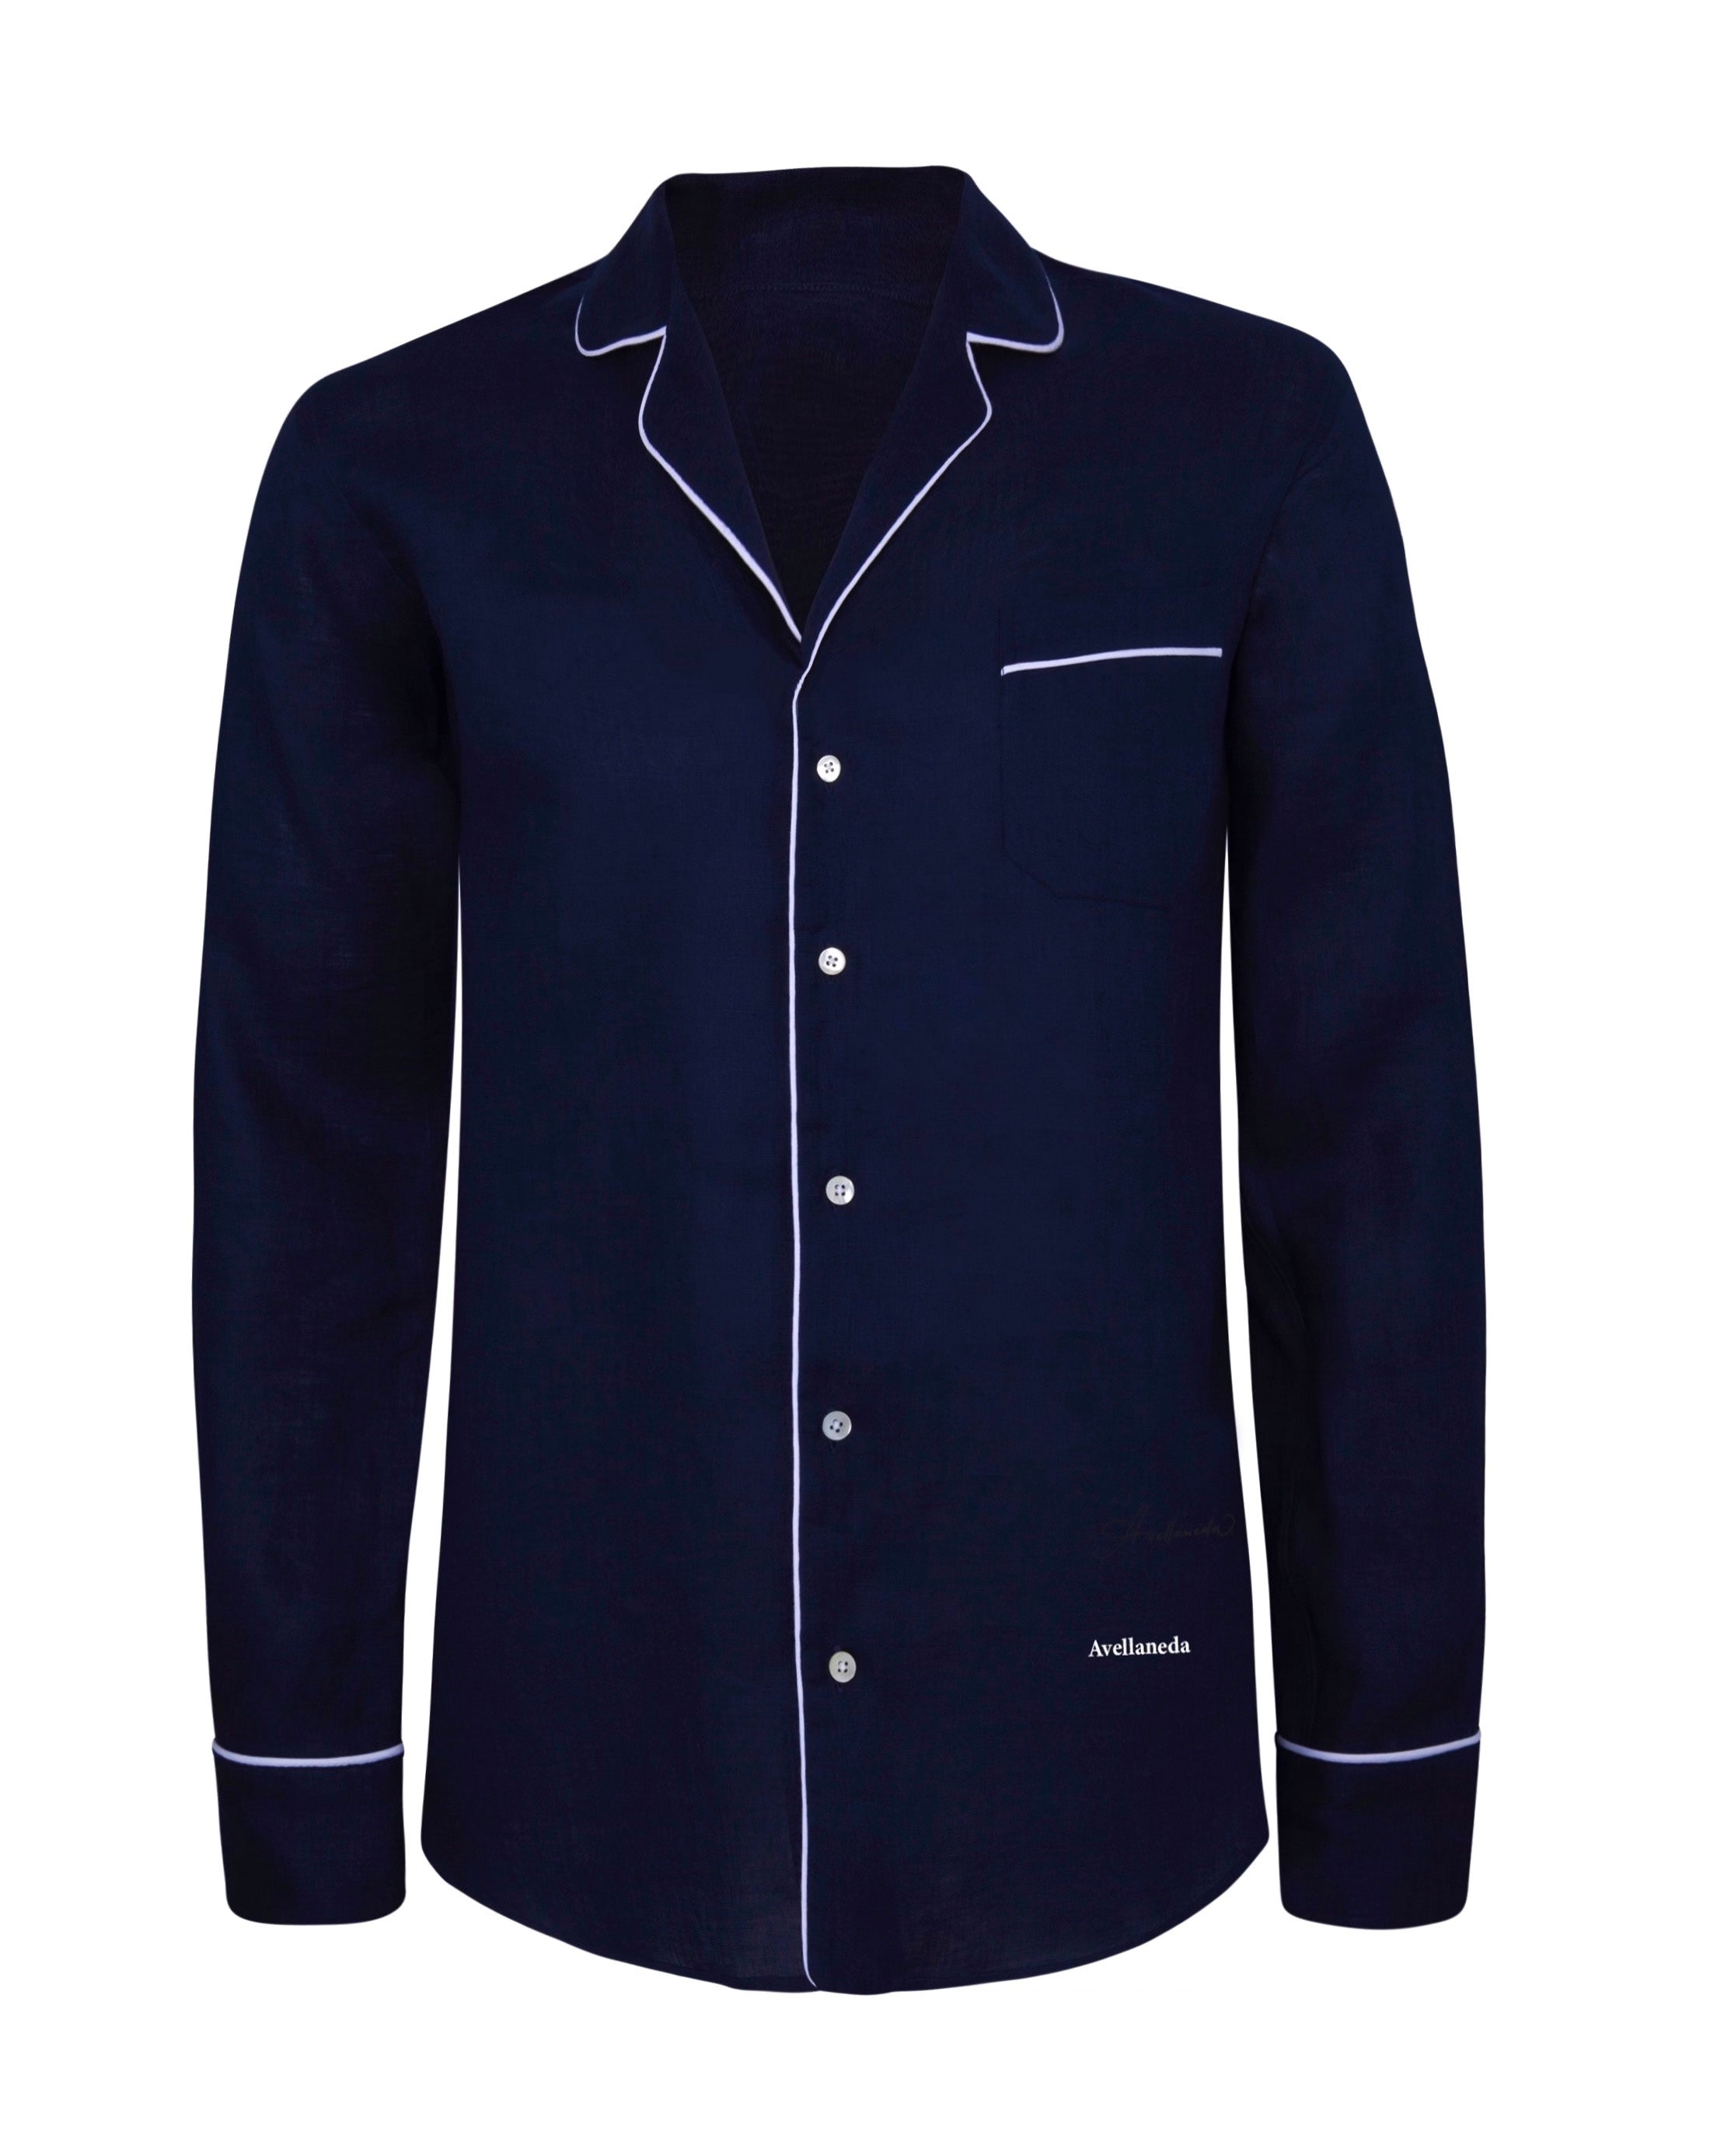 WOMEN'S PJ NAVY SHIRT